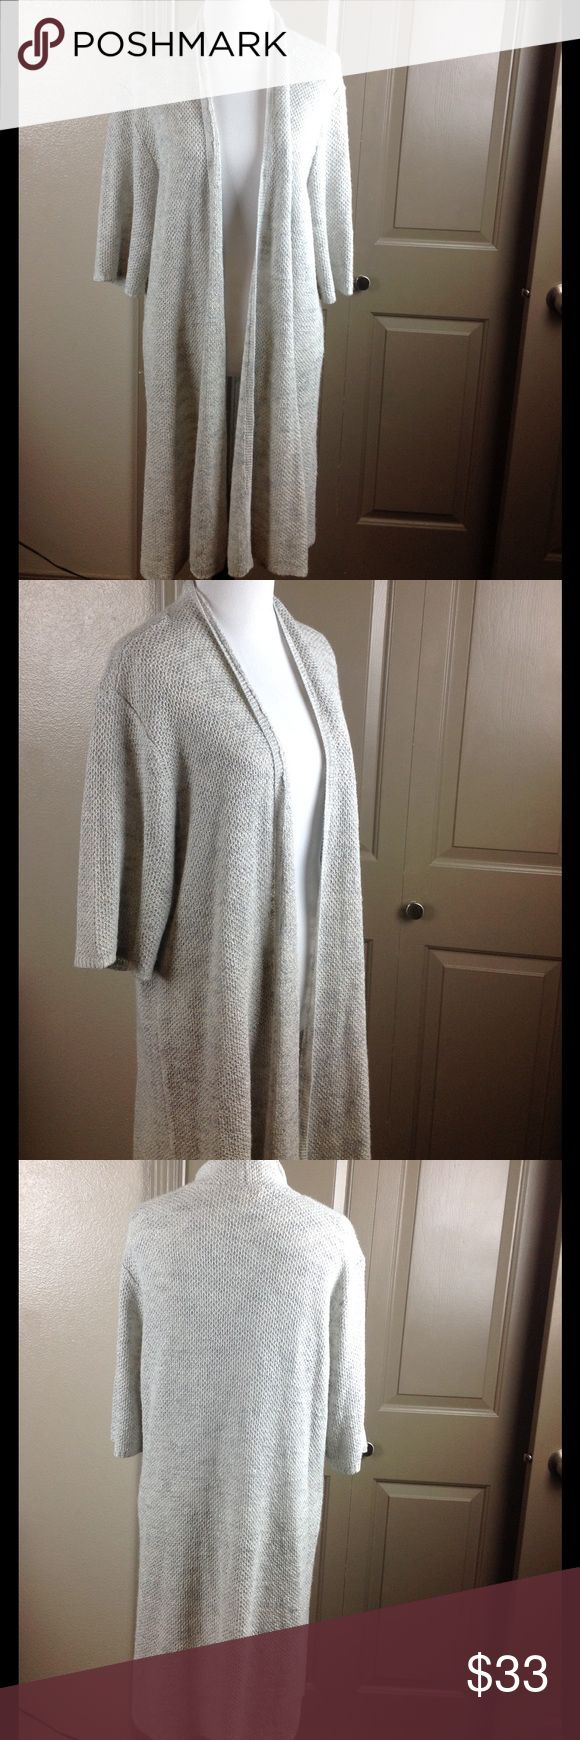 Eileen Fisher Open Cardigan XL Silver Linen Blend Great condition 1/2 sleeve 48/37/15 linen/viscose/nylon hand rash 37 inch length 24 bust Eileen Fisher Sweaters Cardigans